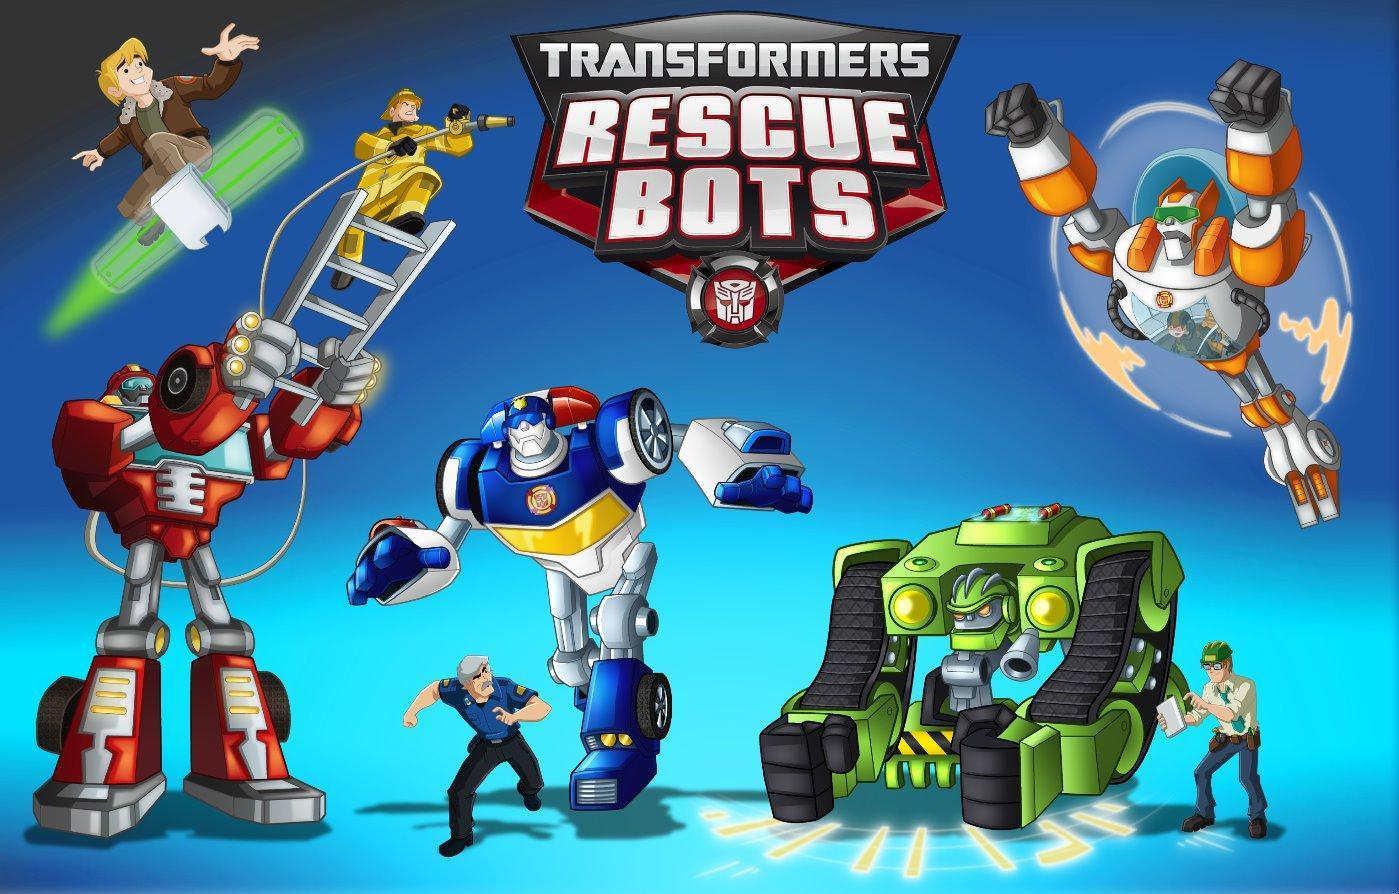 Who do you think are the best partners on Rescue Bots?